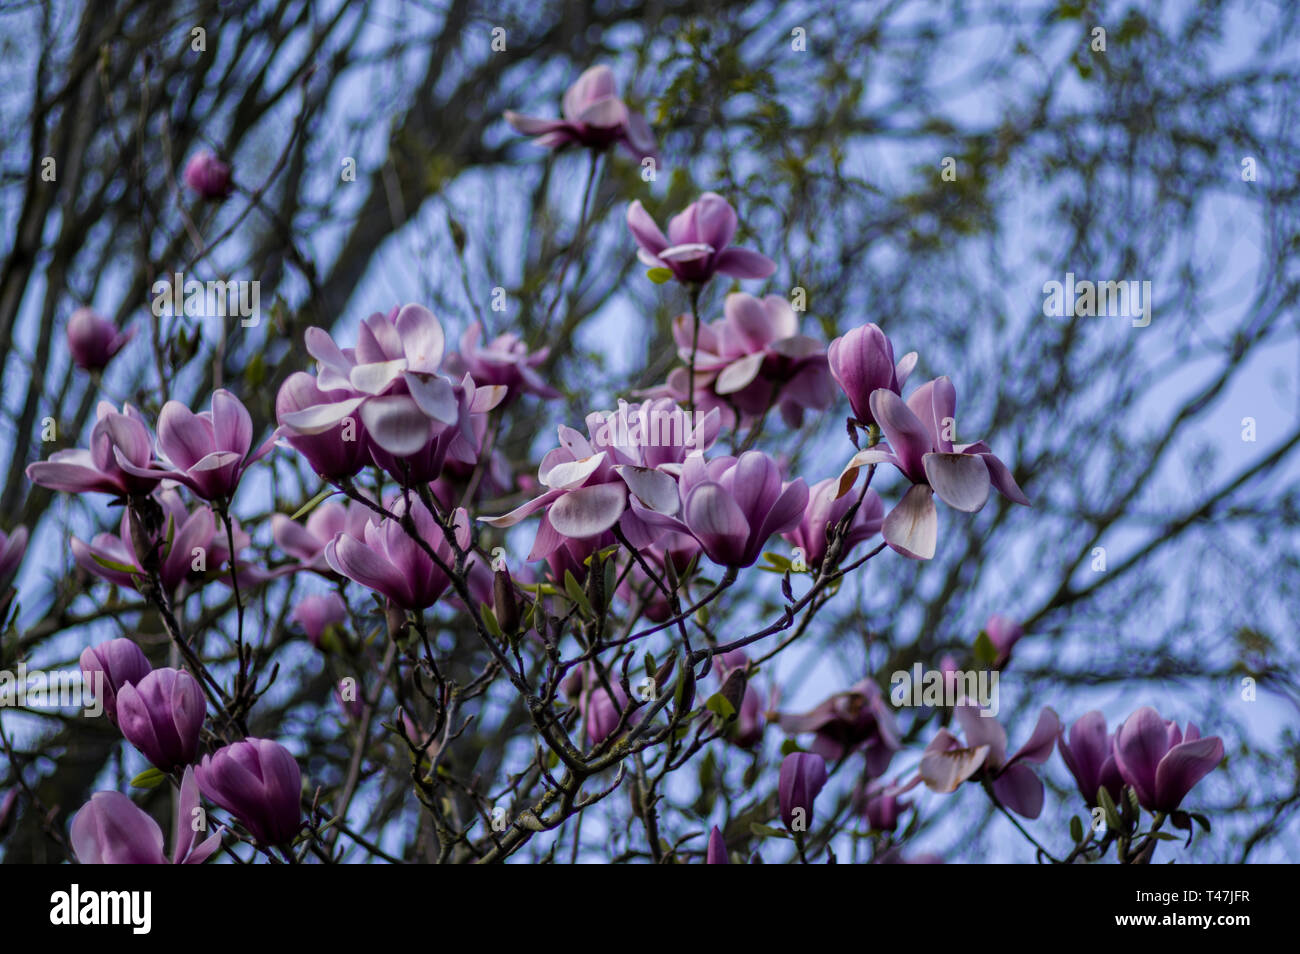 Blossoms and buds of magnolia tree opening in the spring,  subfamily Magnolioideae of the family Magnoliaceae Stock Photo